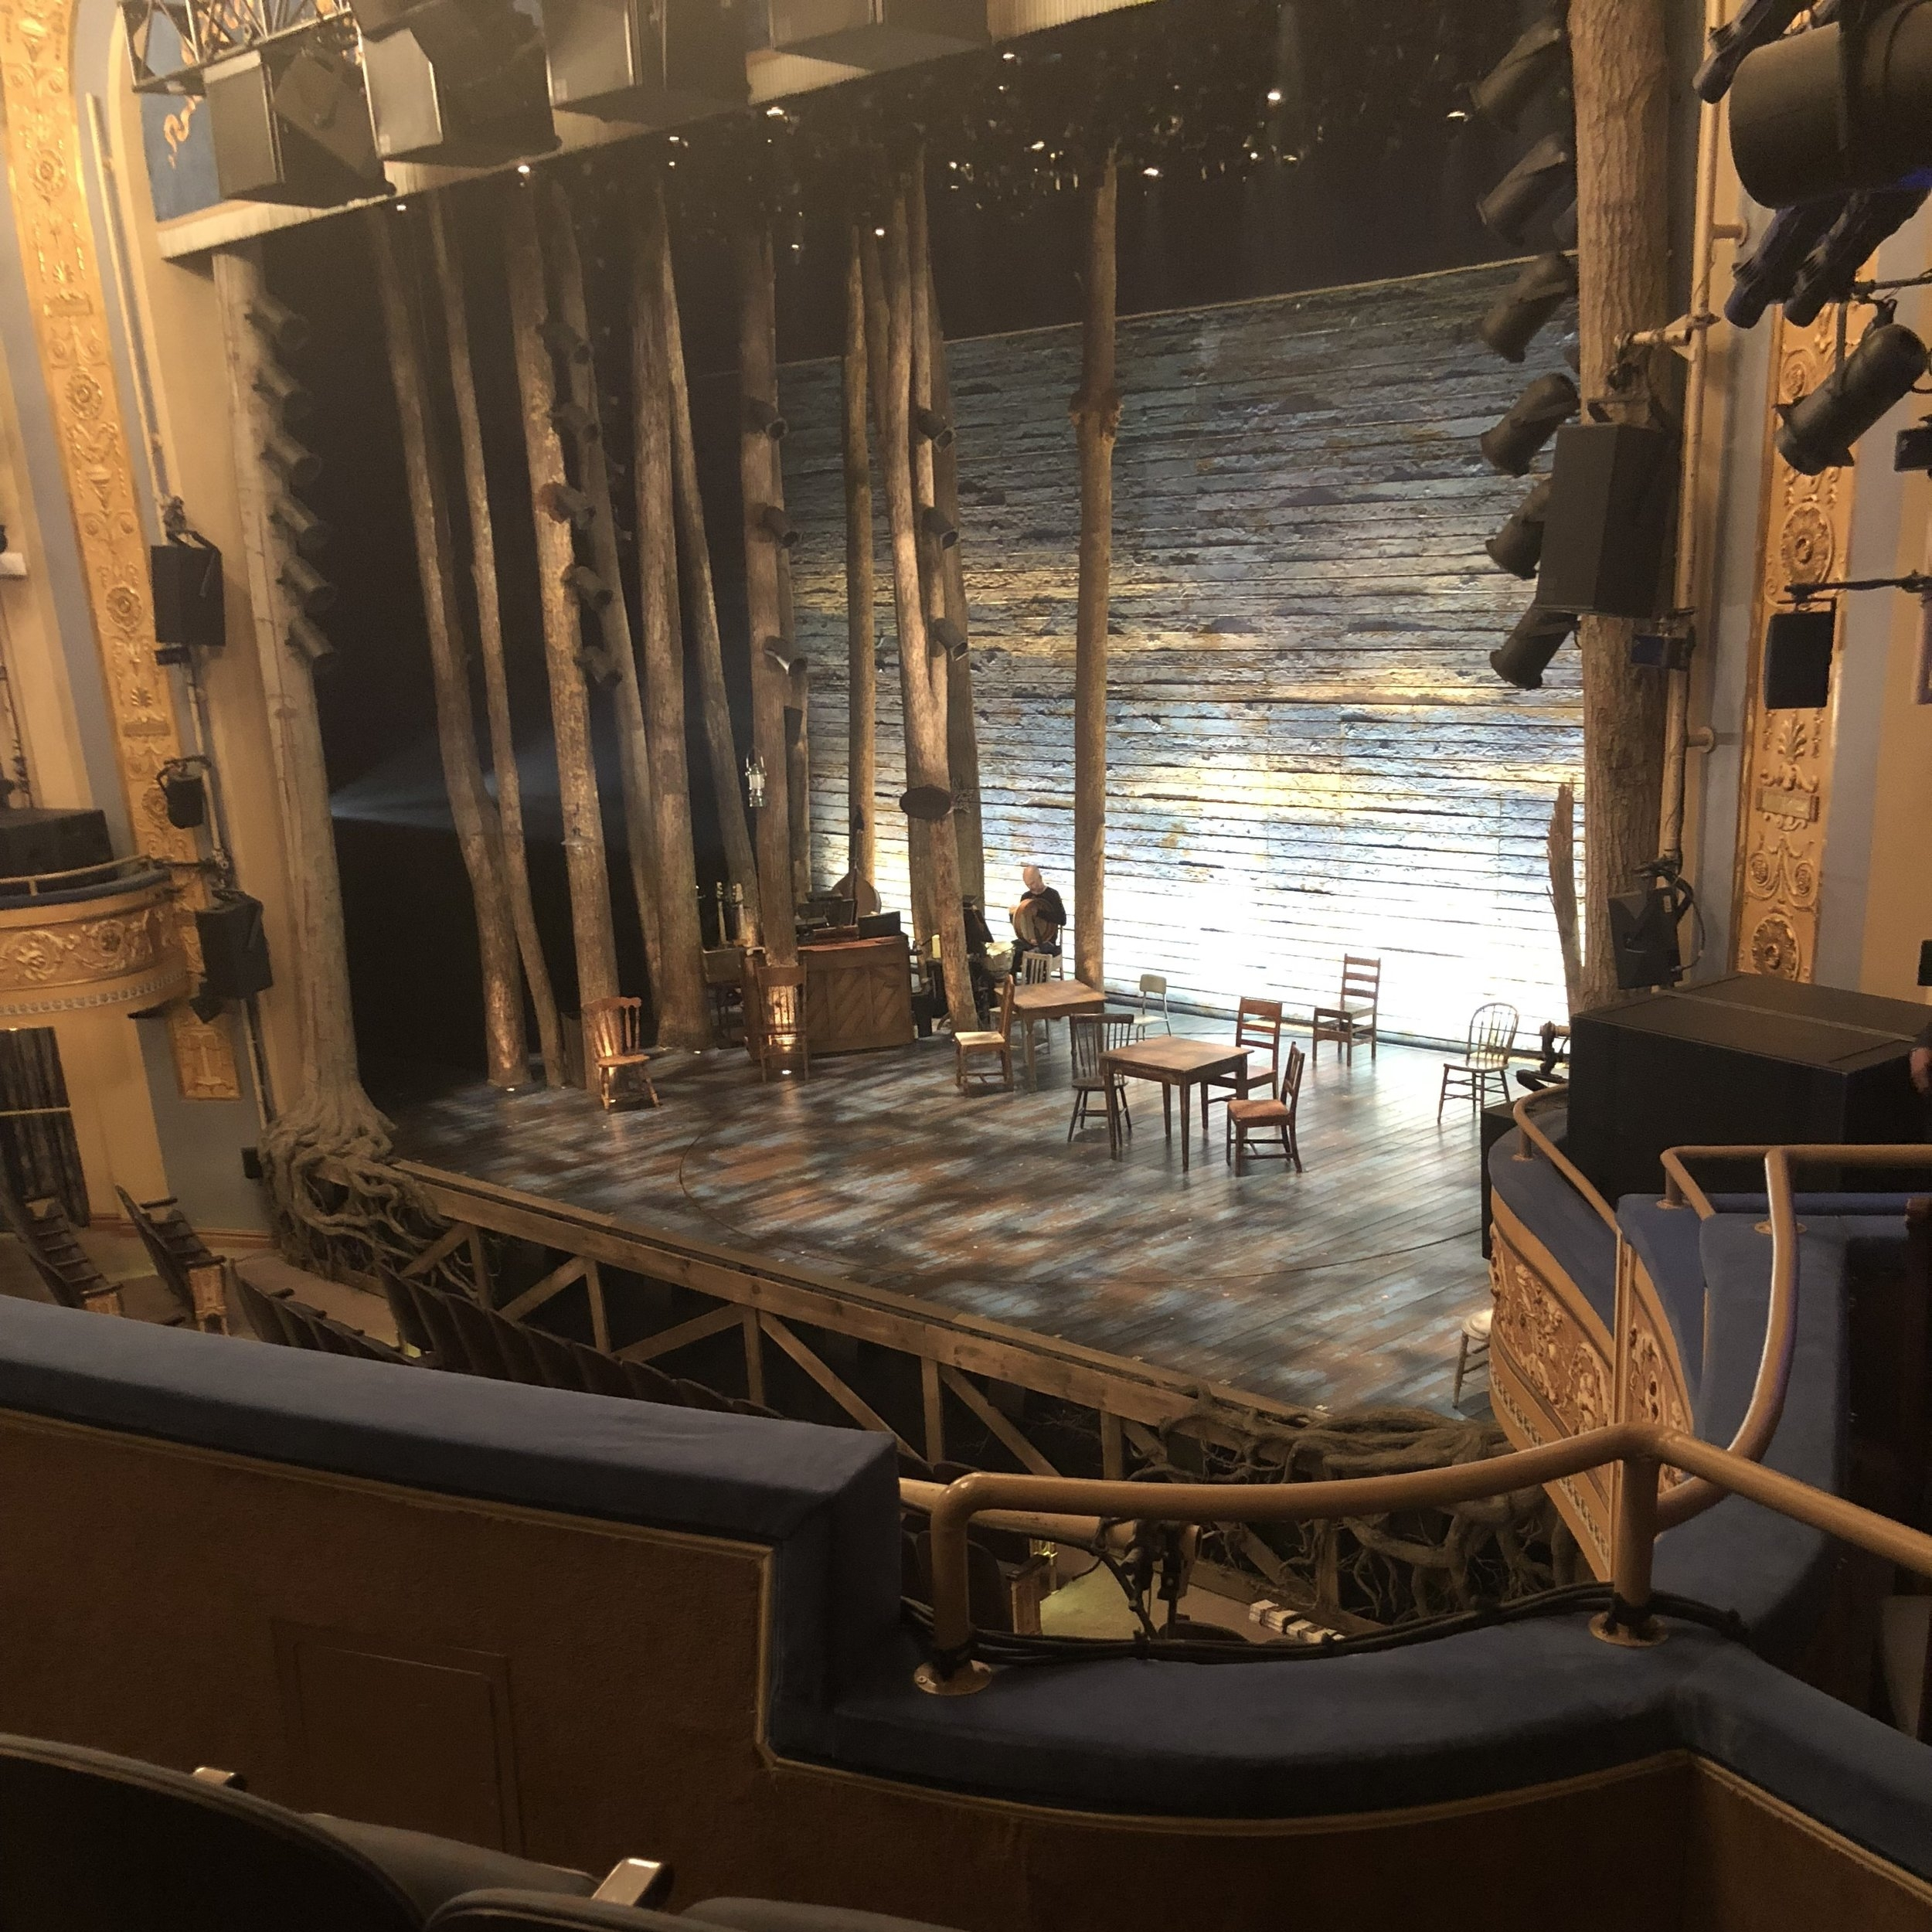 The set design for Come From Away. Picture taken by me.